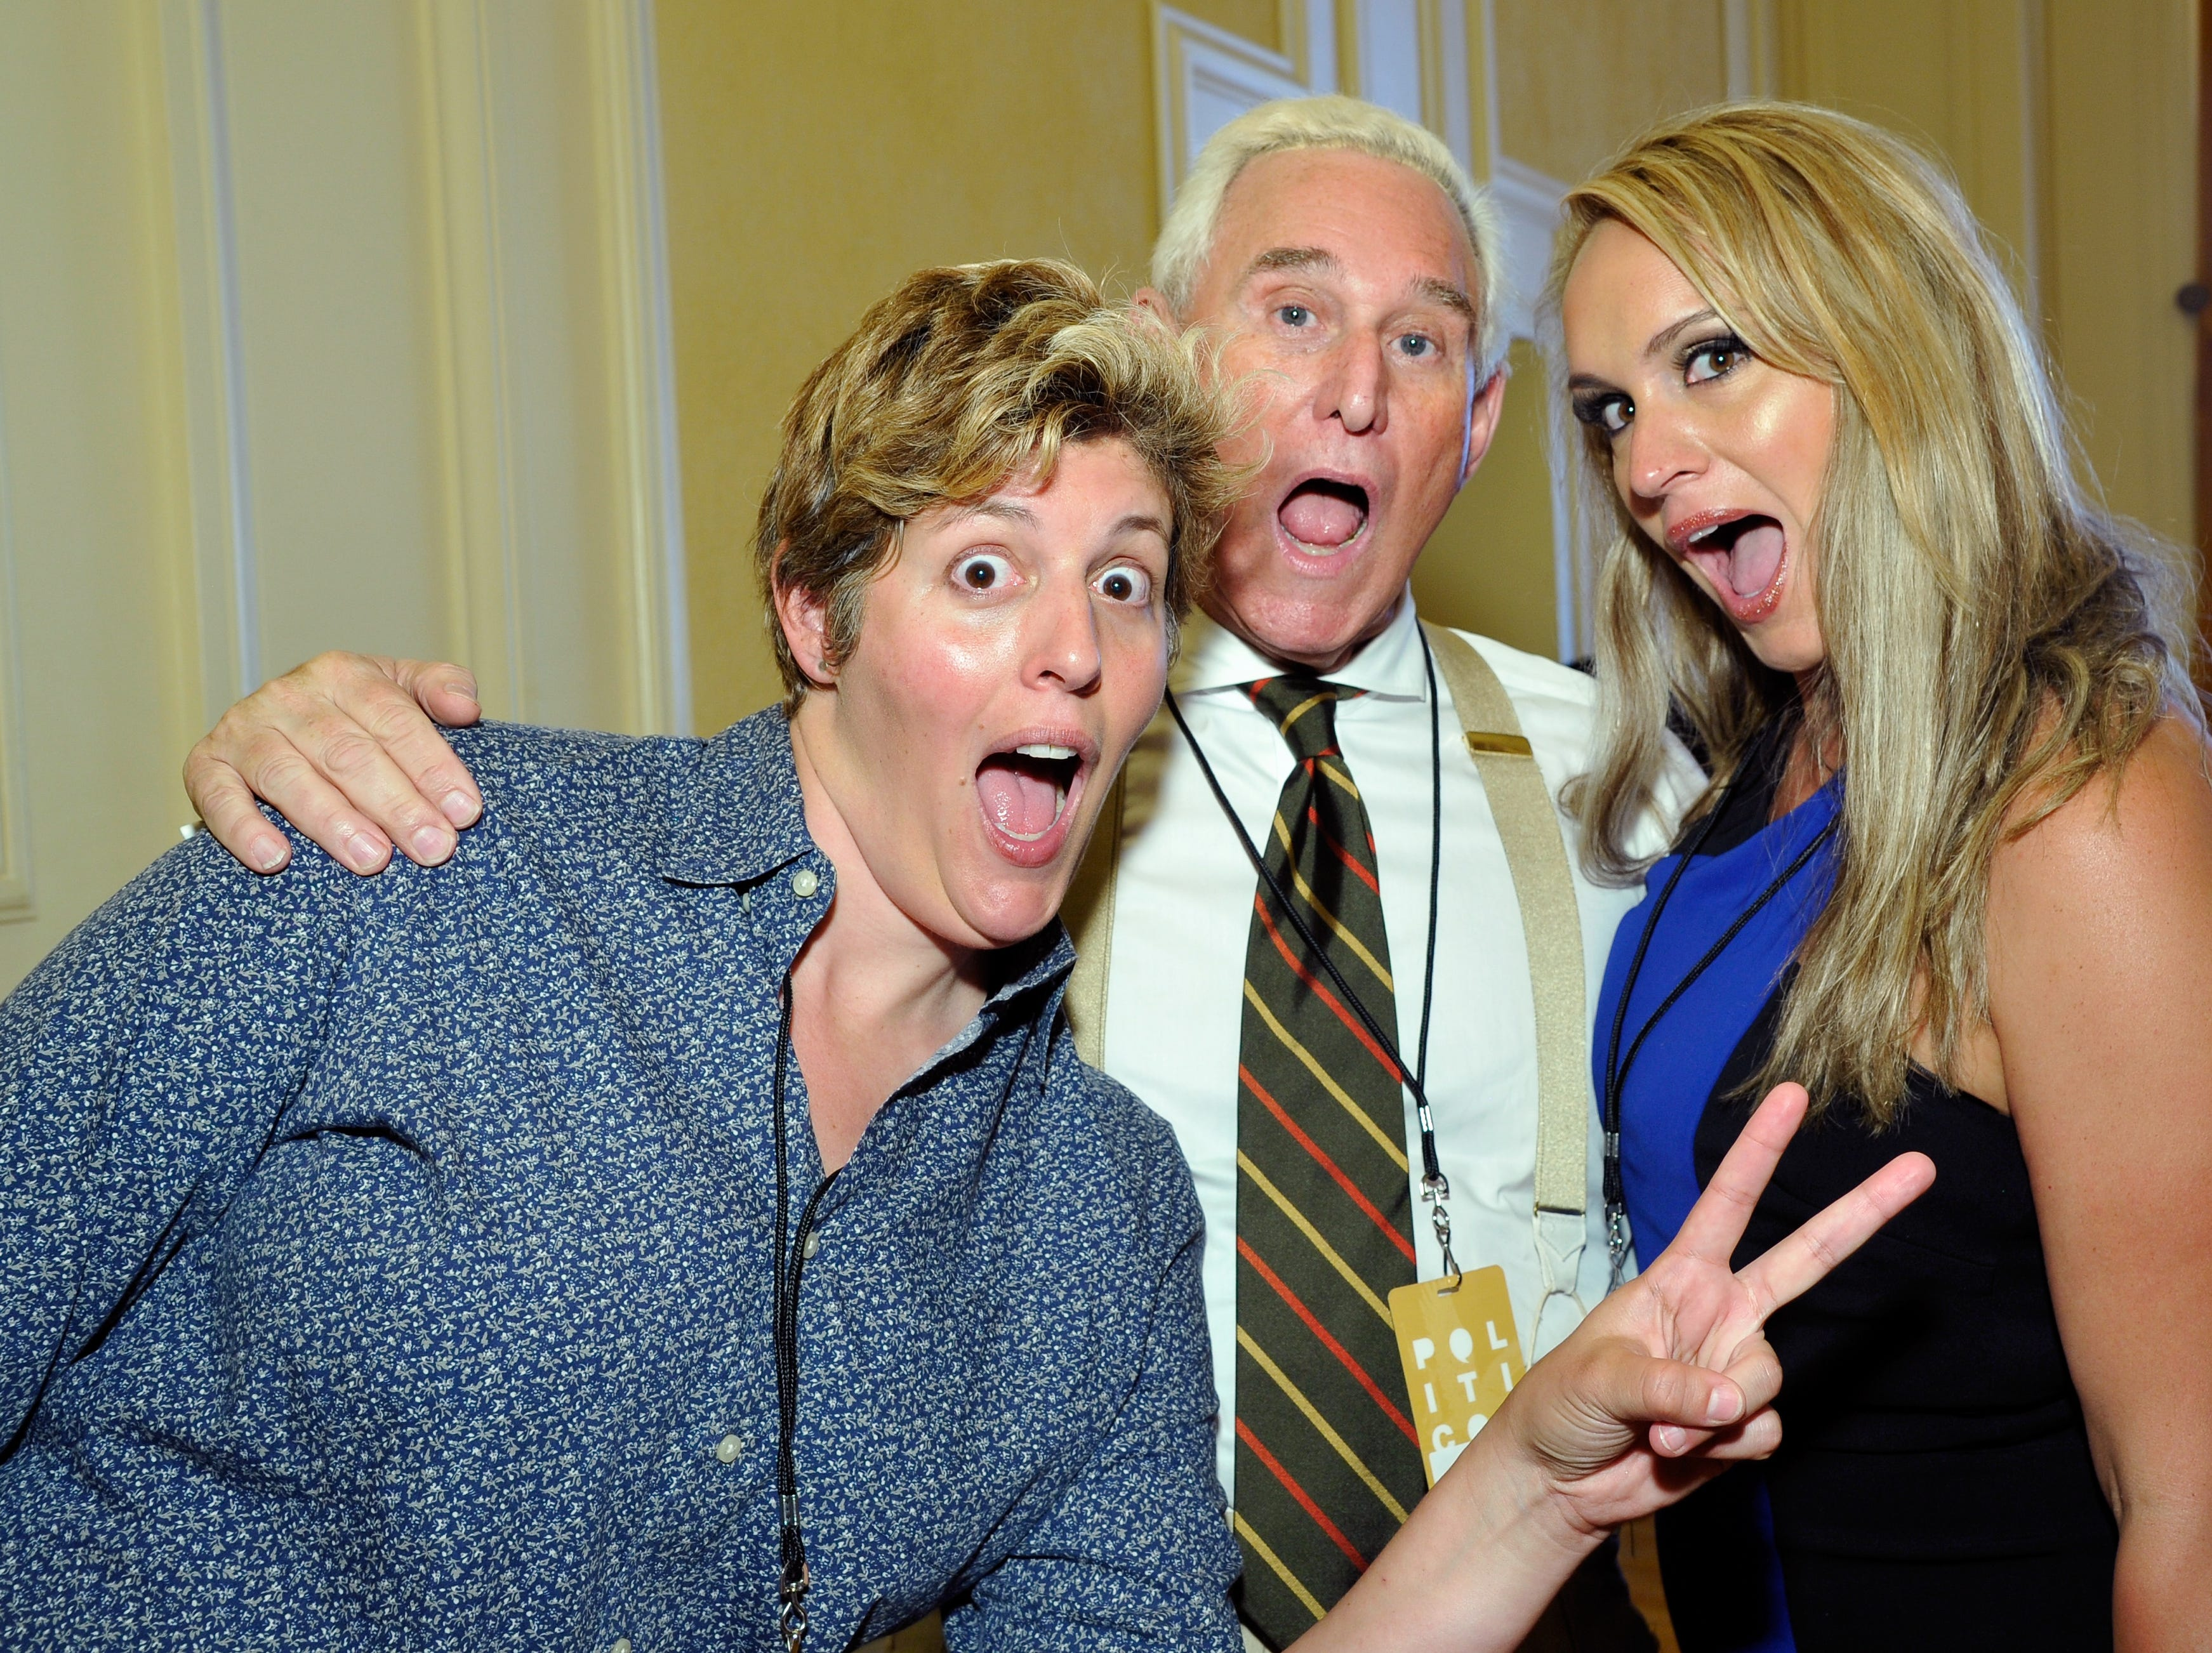 Sally Kohn, Roger Stone and Scottie Nell Hughes at Politicon at Pasadena Convention Center on July 29, 2017 in Pasadena, Calif.